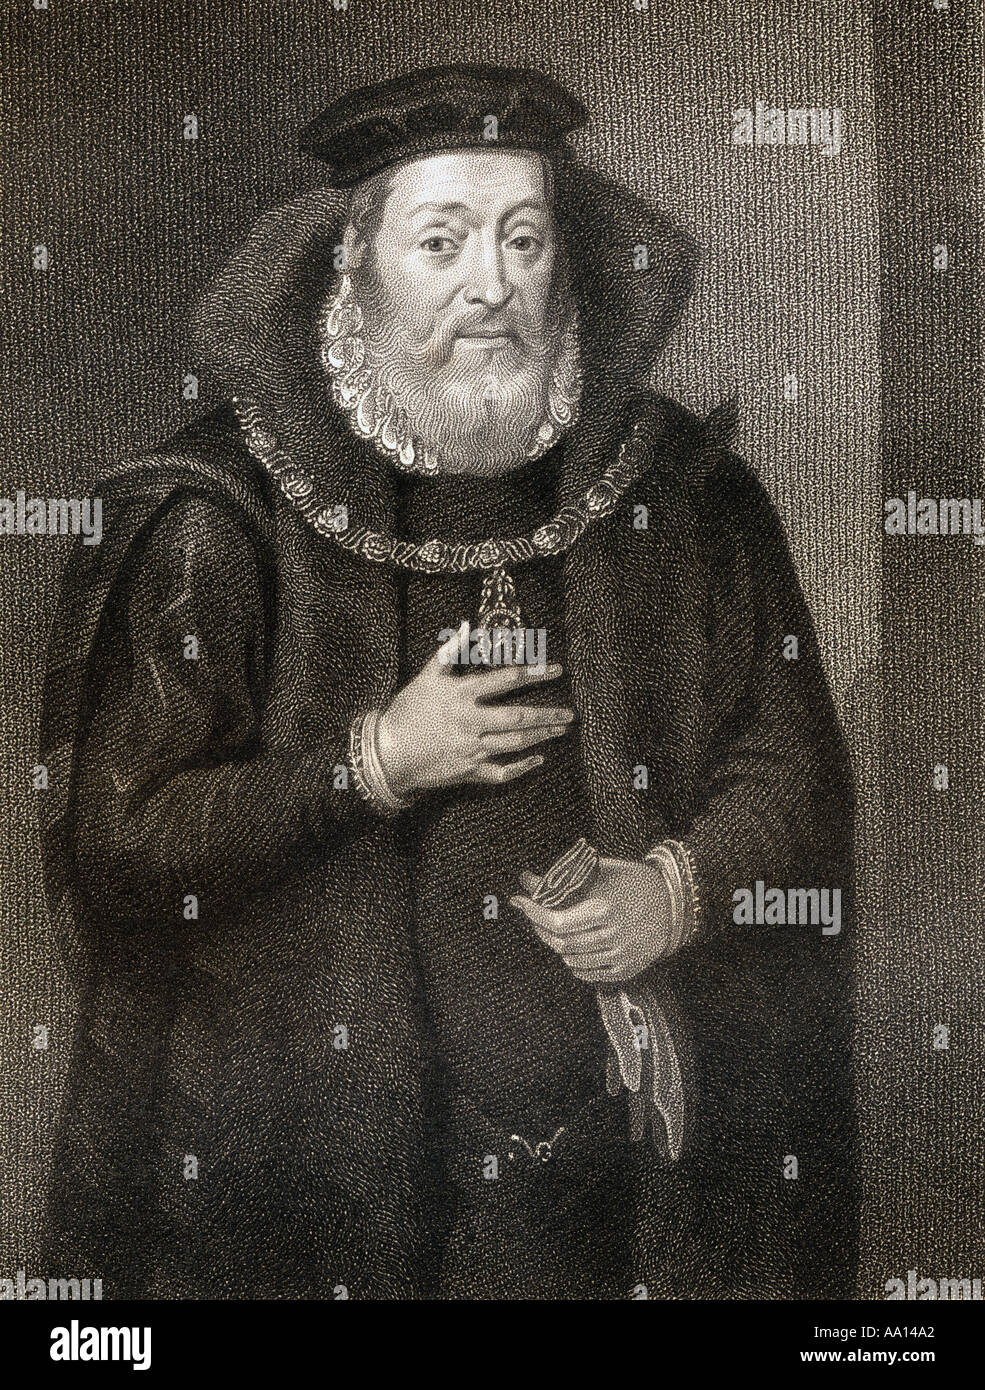 James Hamilton, Duke of Châtellerault and 2nd Earl of Arran, c. 1516 – 1575.  Regent for Mary, Queen of Scots. - Stock Image